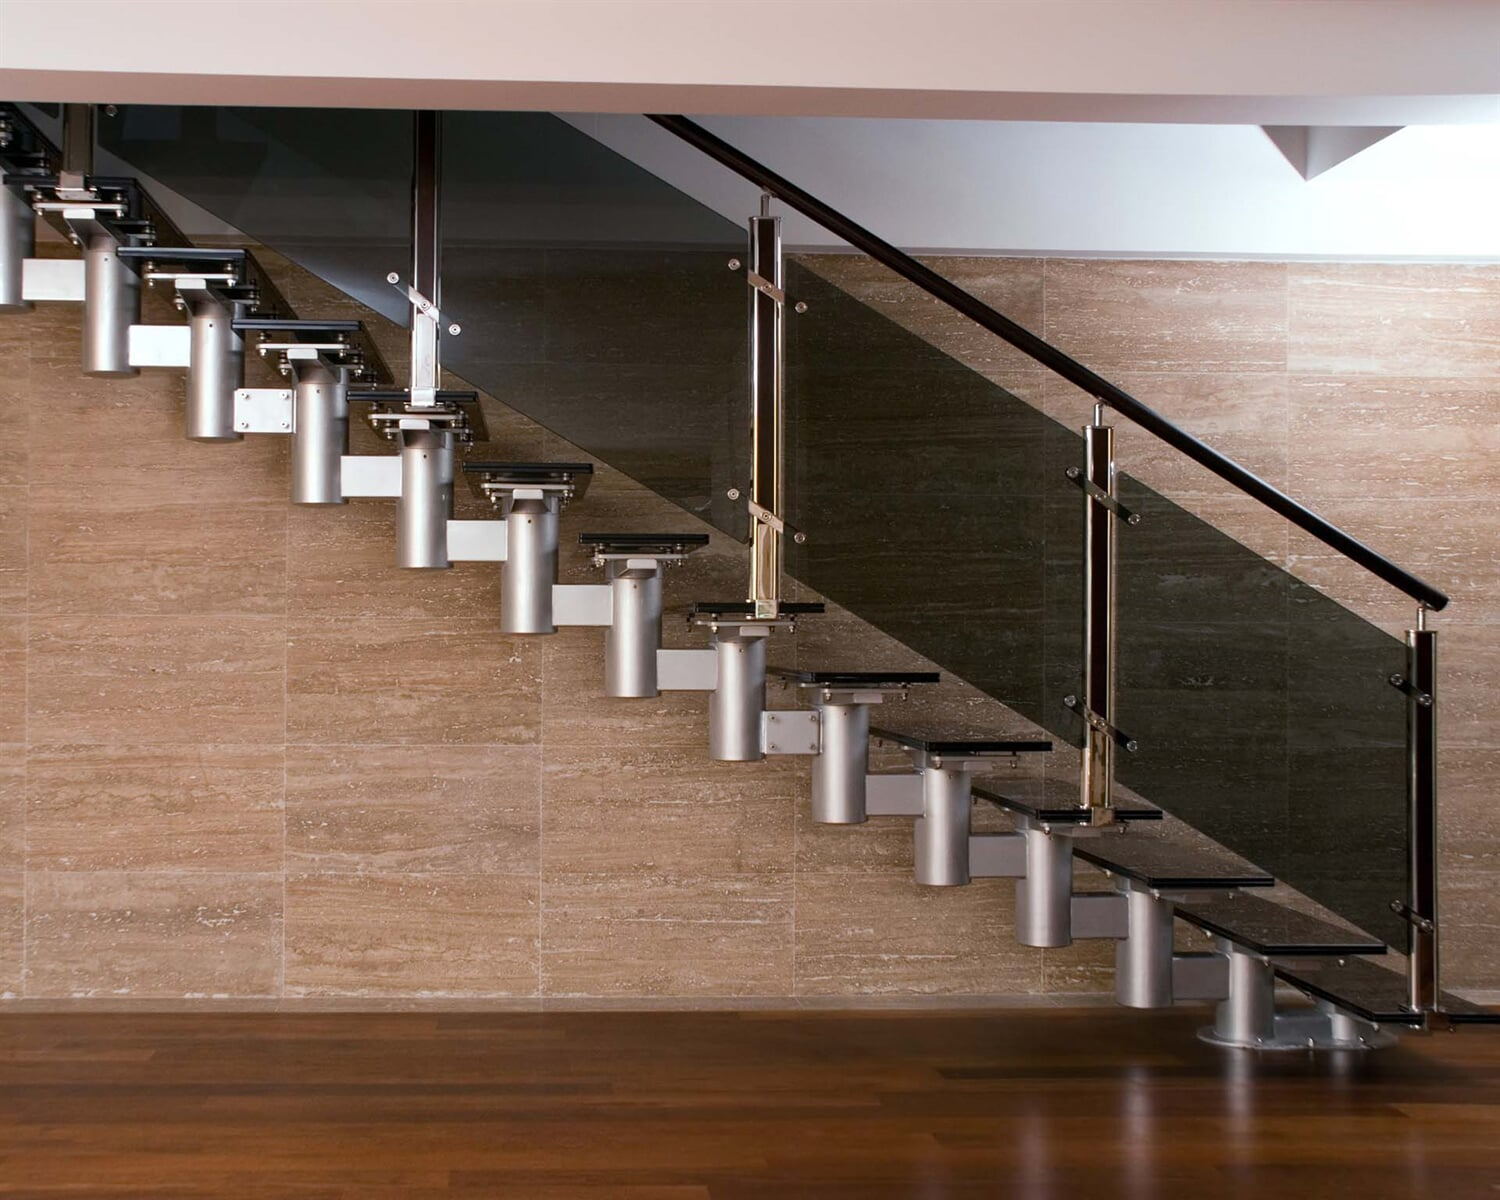 Glass-staircase-94921157_3848x2556 (1)